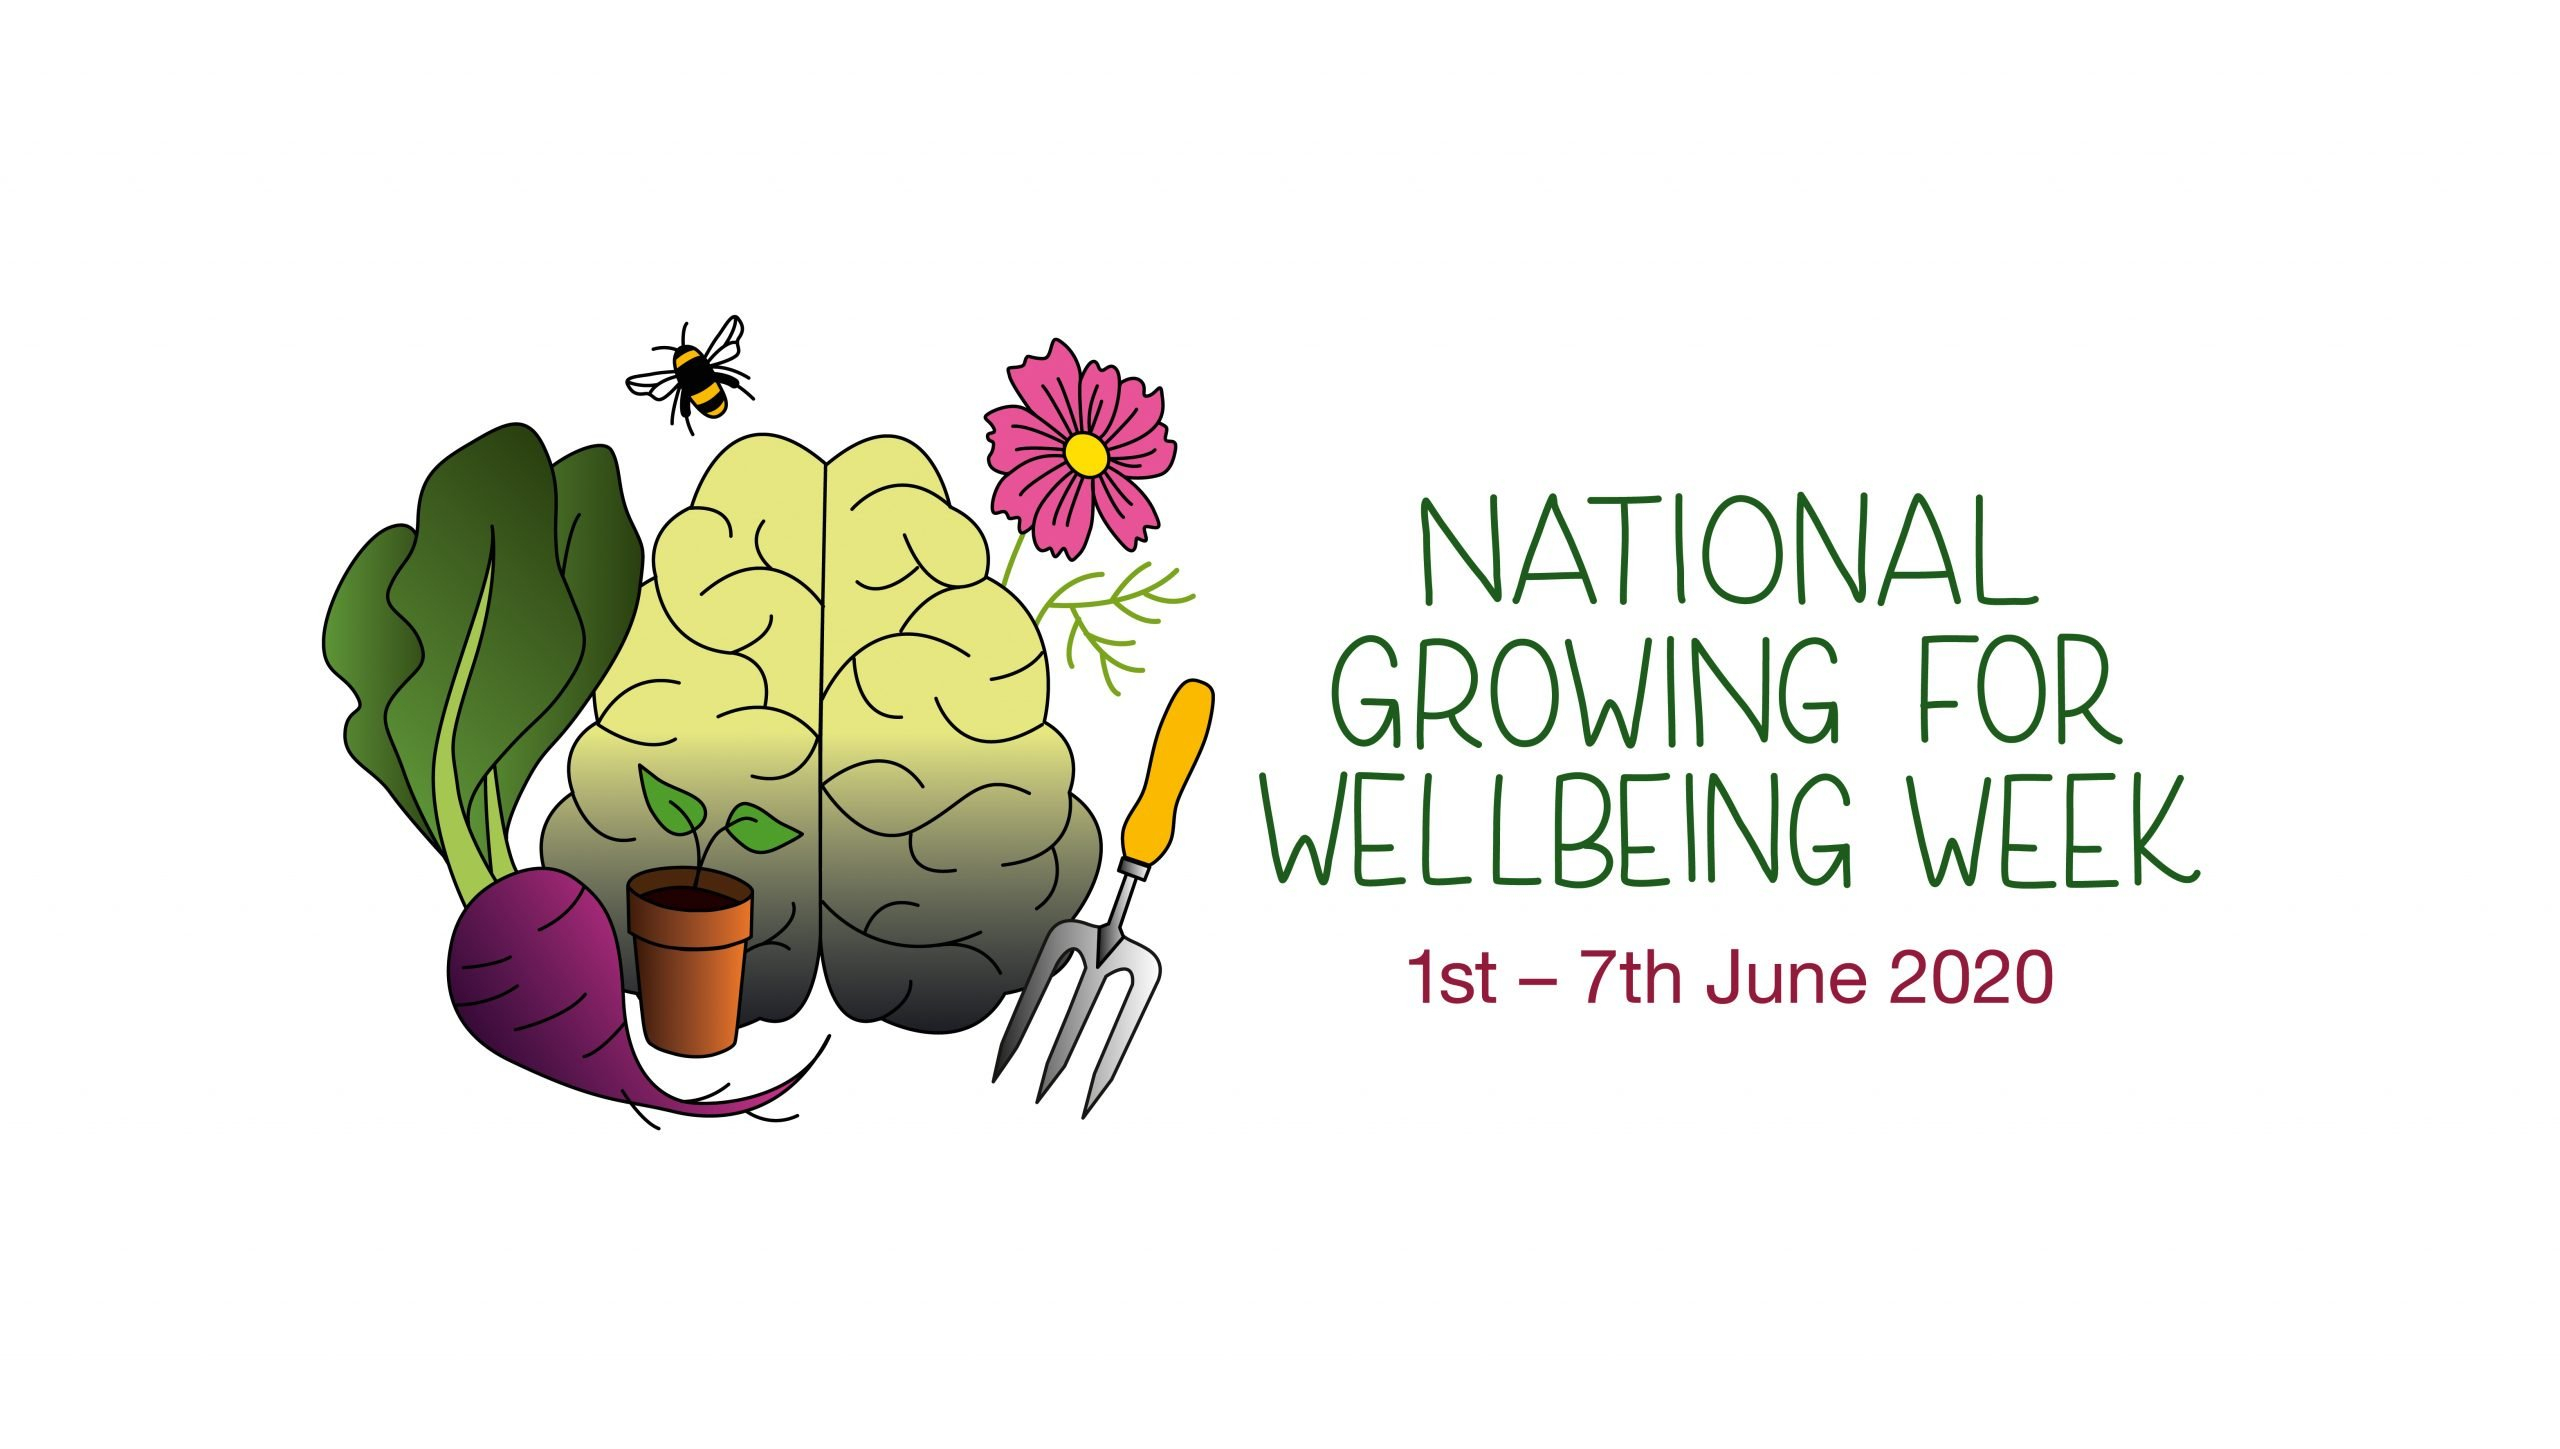 National Growing For Wellbeing Week 2021 - National